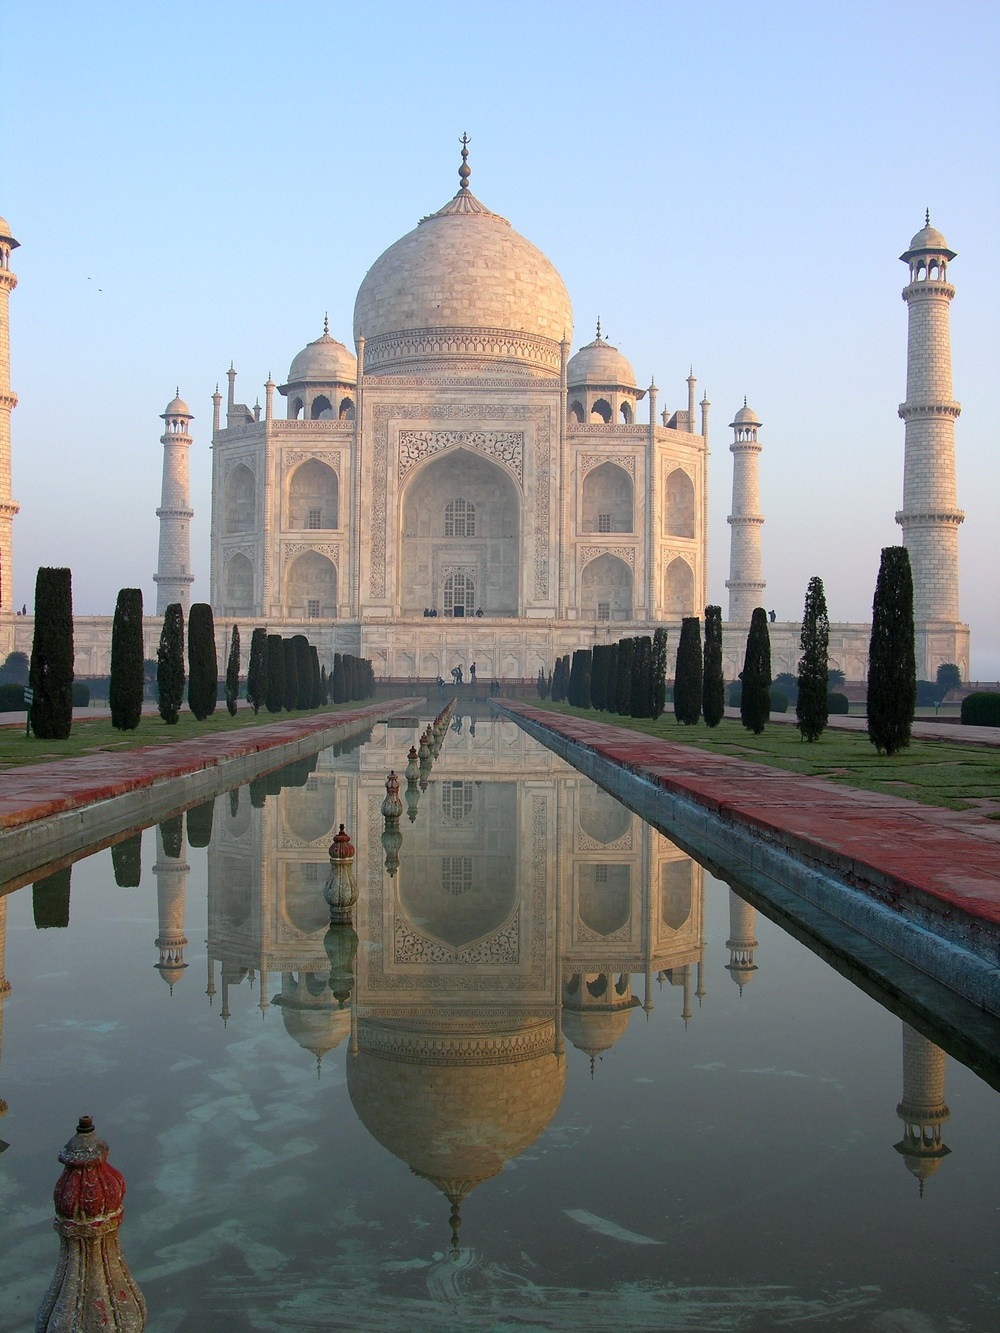 The Taj Mahal Photo credit: Sanjay Chatterji